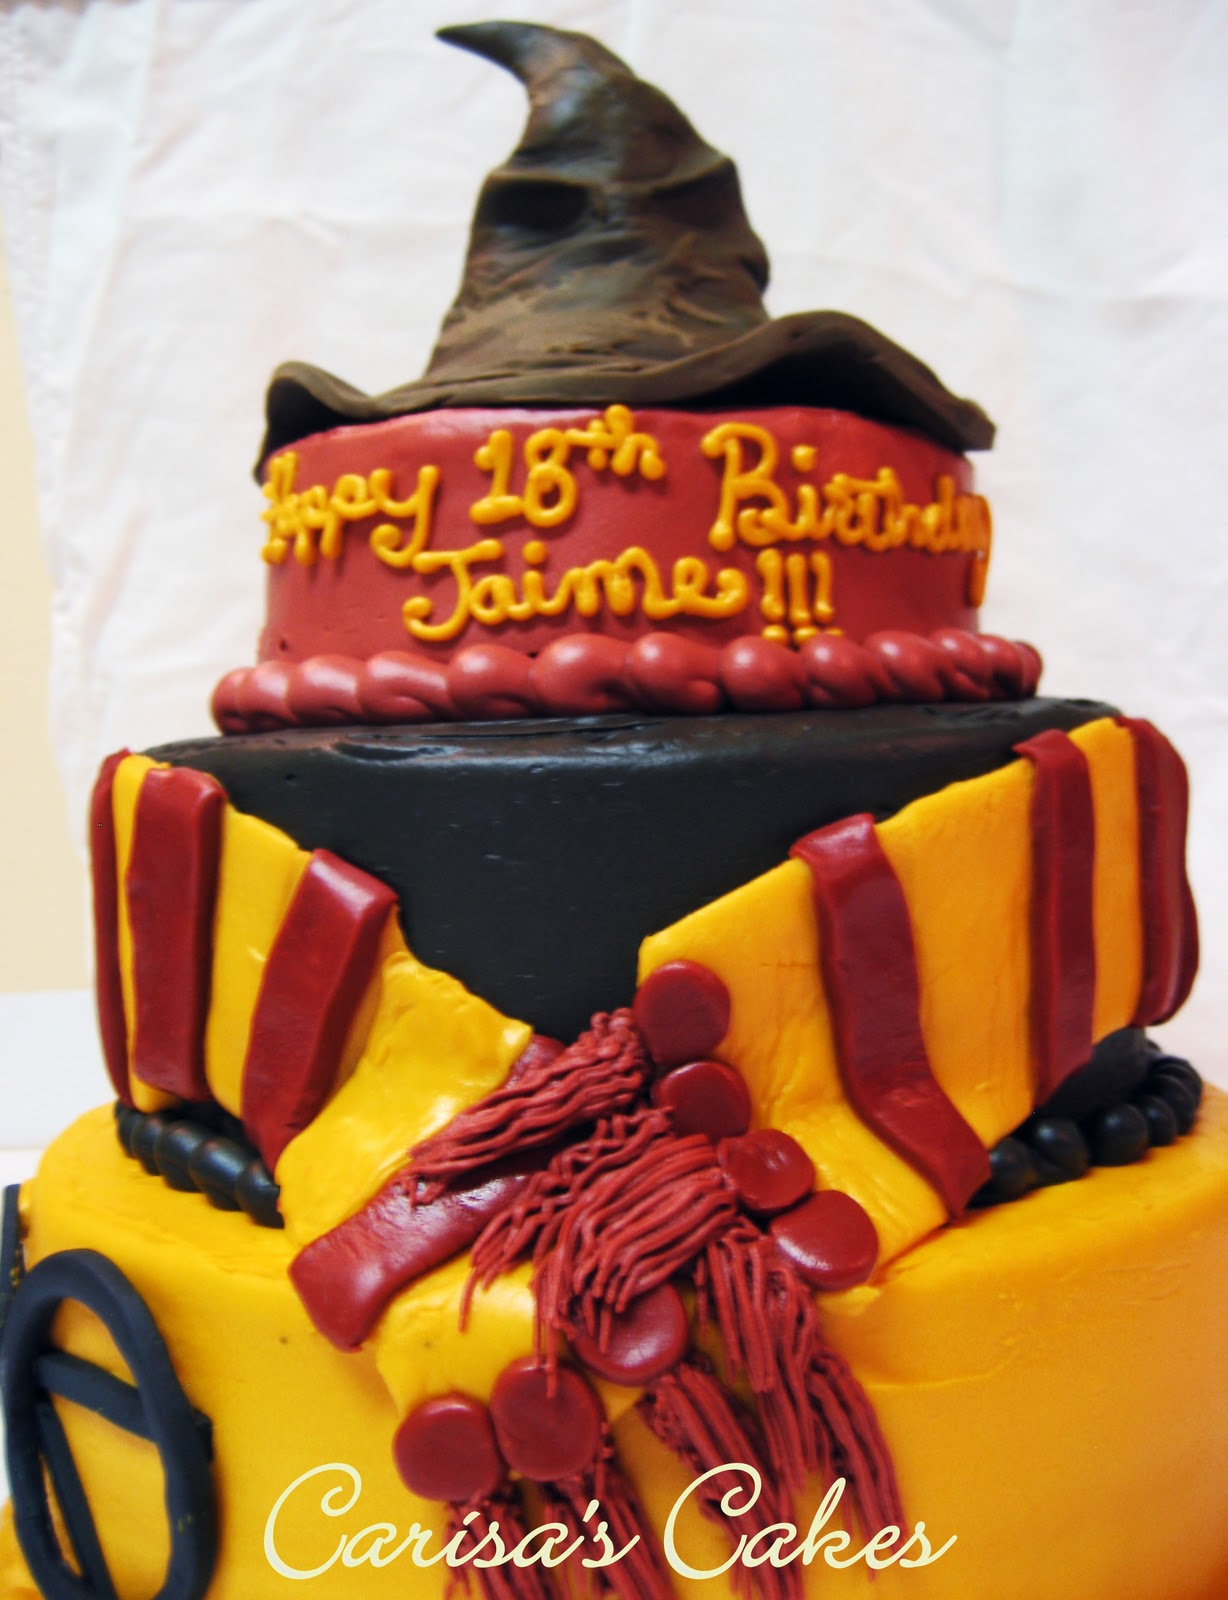 Carisas Cakes 3 Tiered Harry Potter Birthday Cake